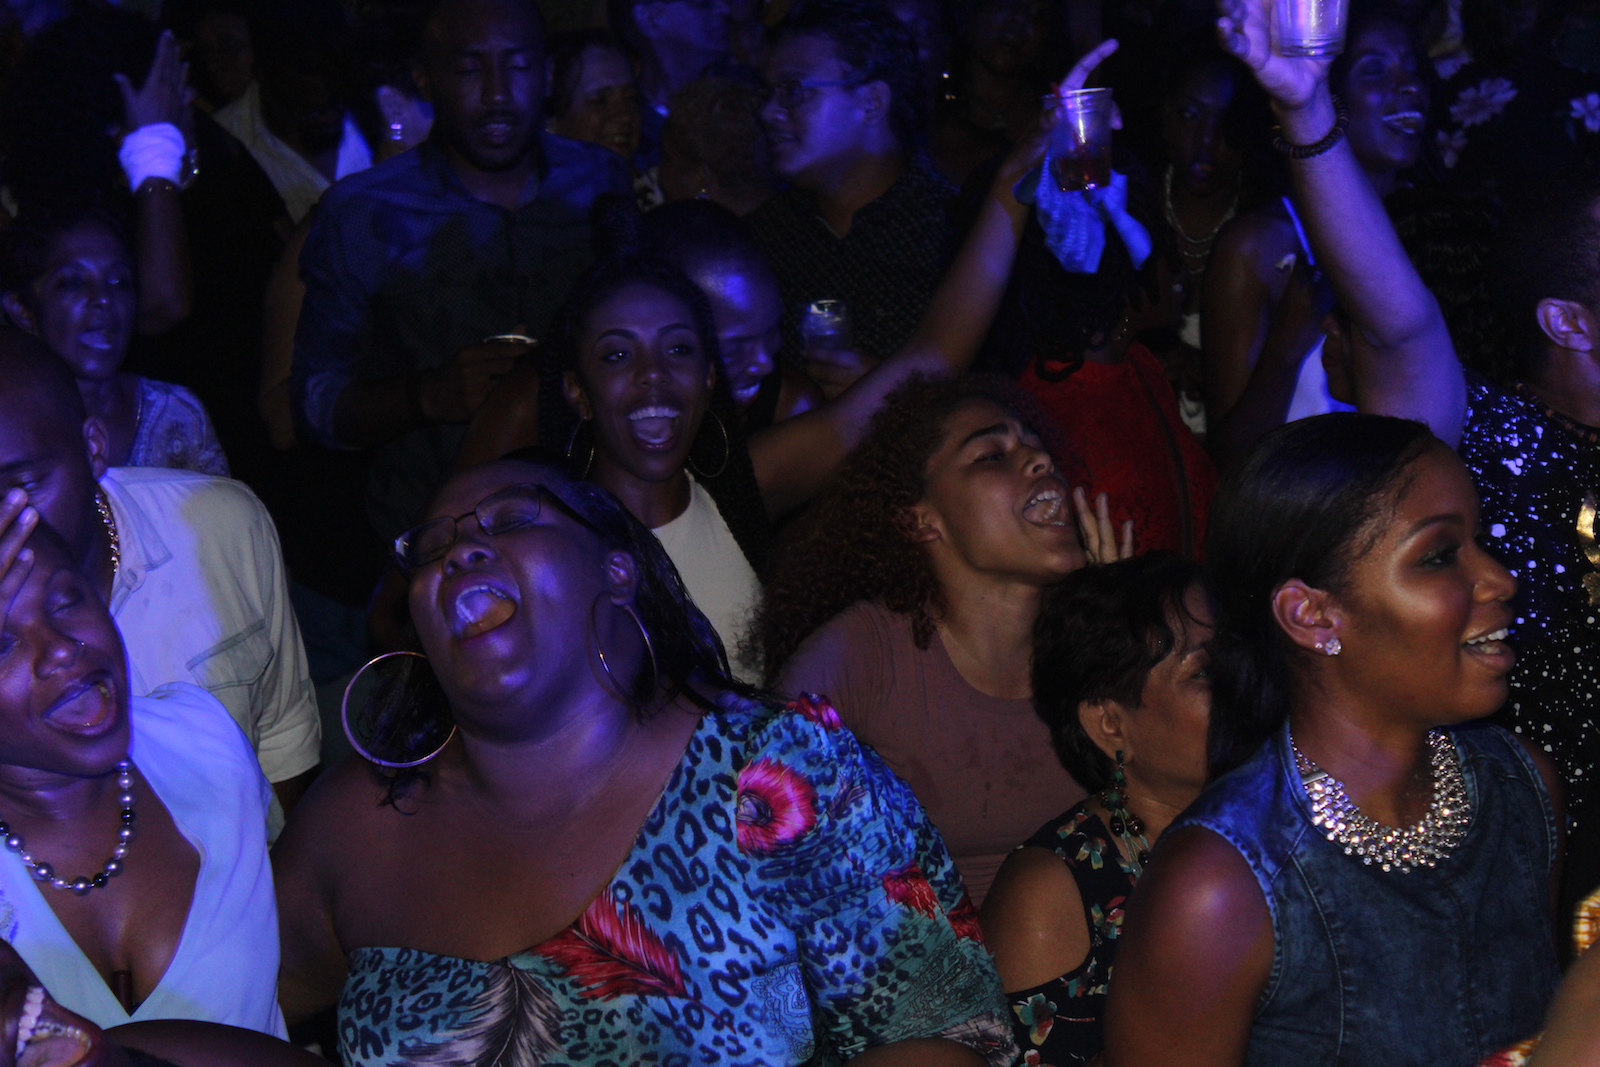 File photo: Patrons scream and cheer for two-time Soca Monarch king Voice as he was making his way on stage for  Bishop's Fete Cocktails, Denims and Diamonds! at Estate 101, Saddle Road last year.